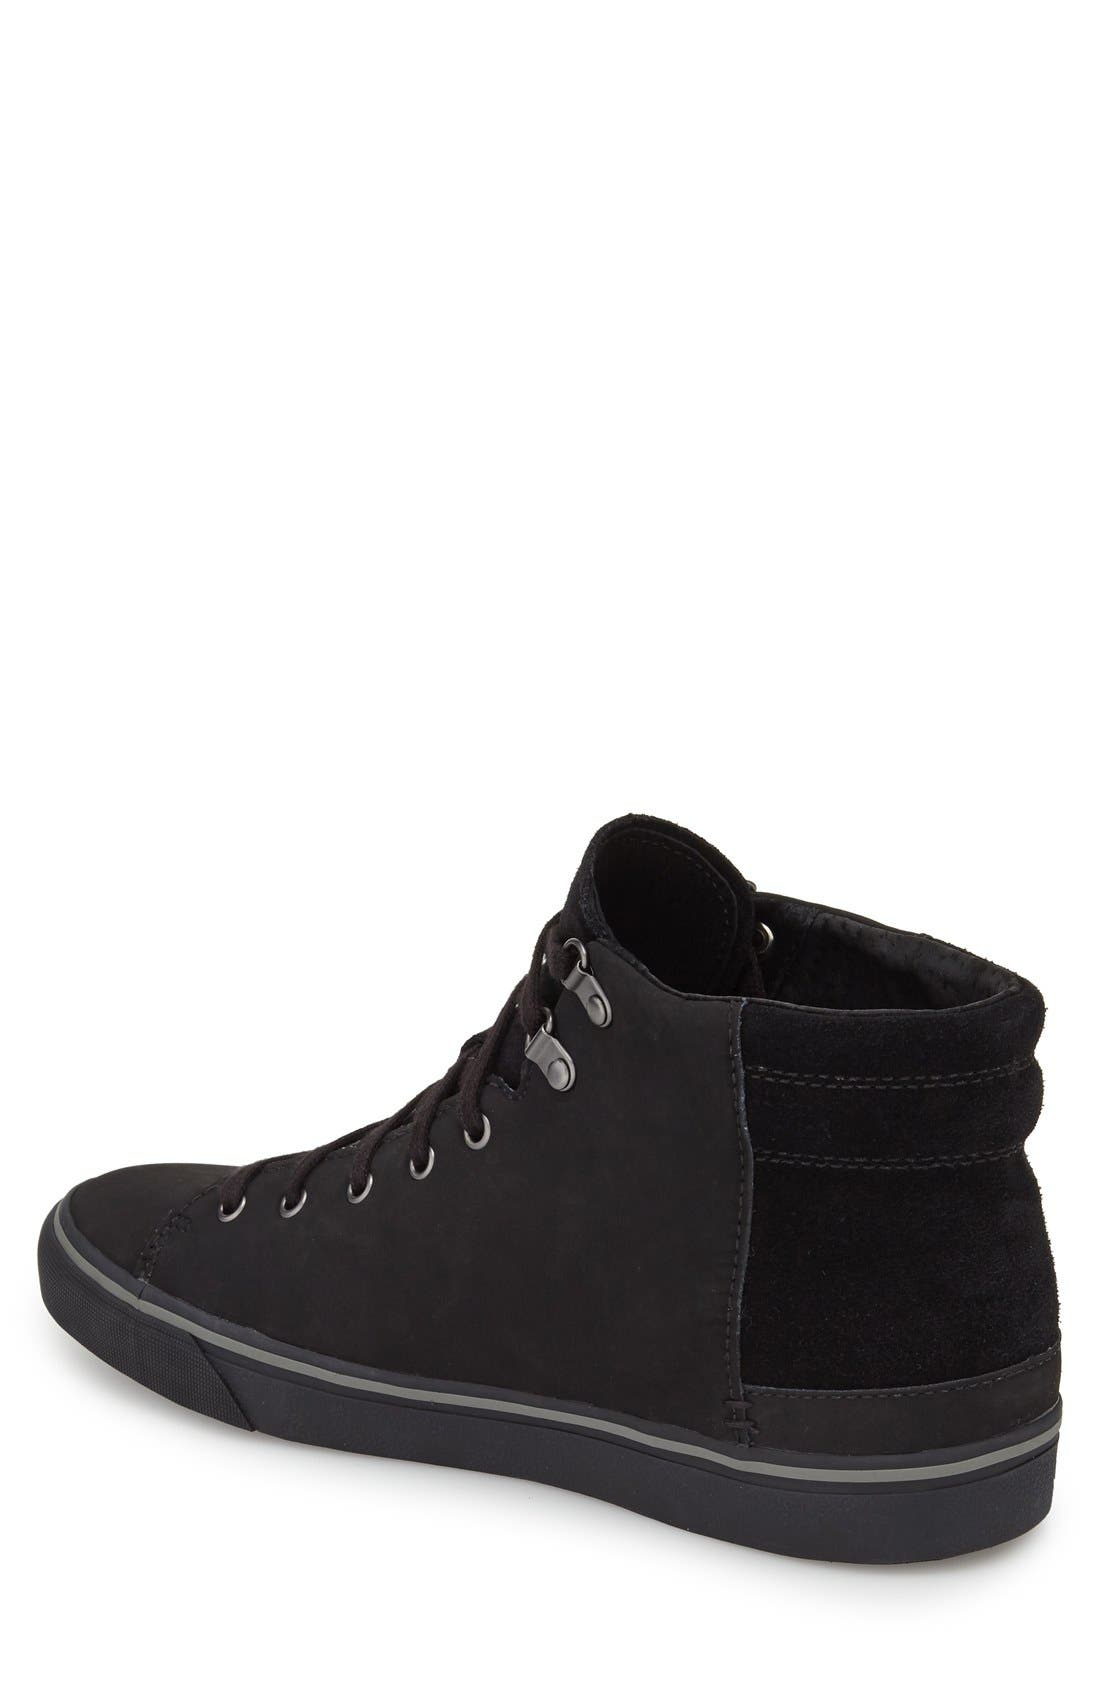 Alternate Image 2  - UGG® 'Hoyt' Waterproof High Top Sneaker (Men)